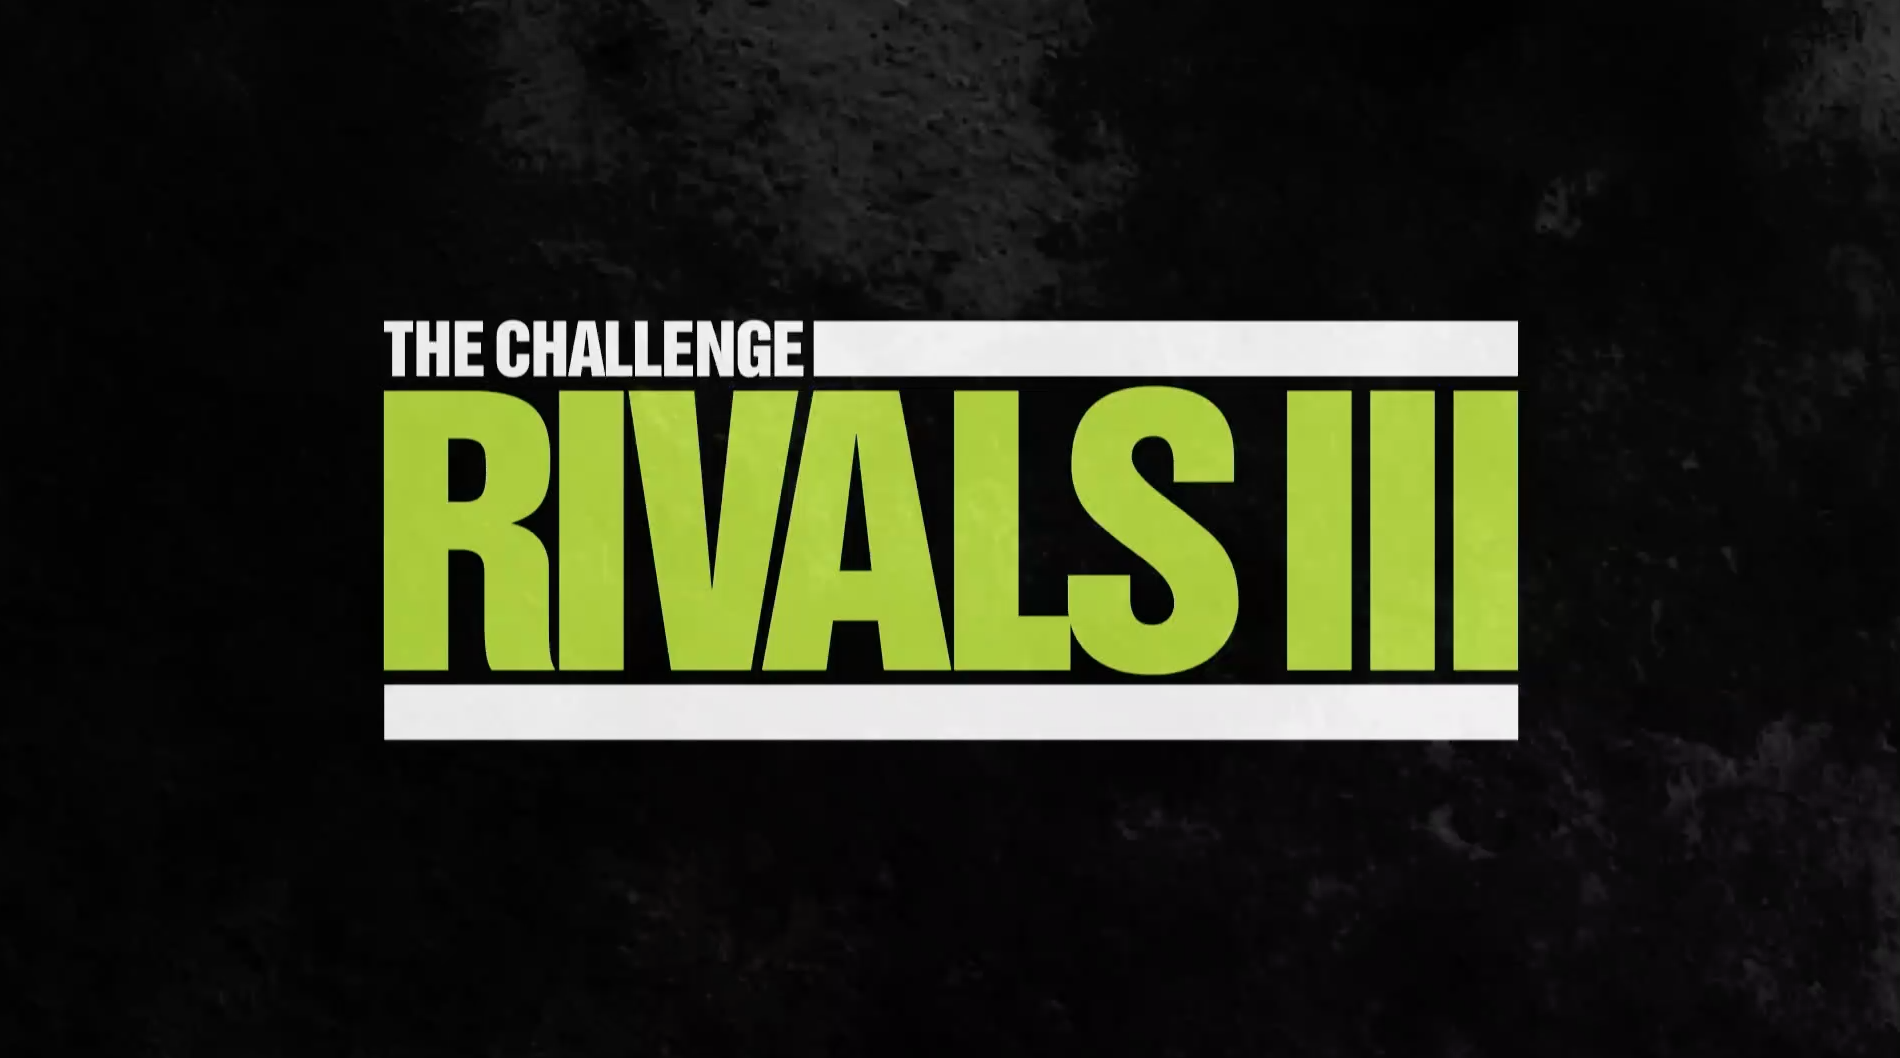 The Challenge Rivals 3 Thumb 2.png